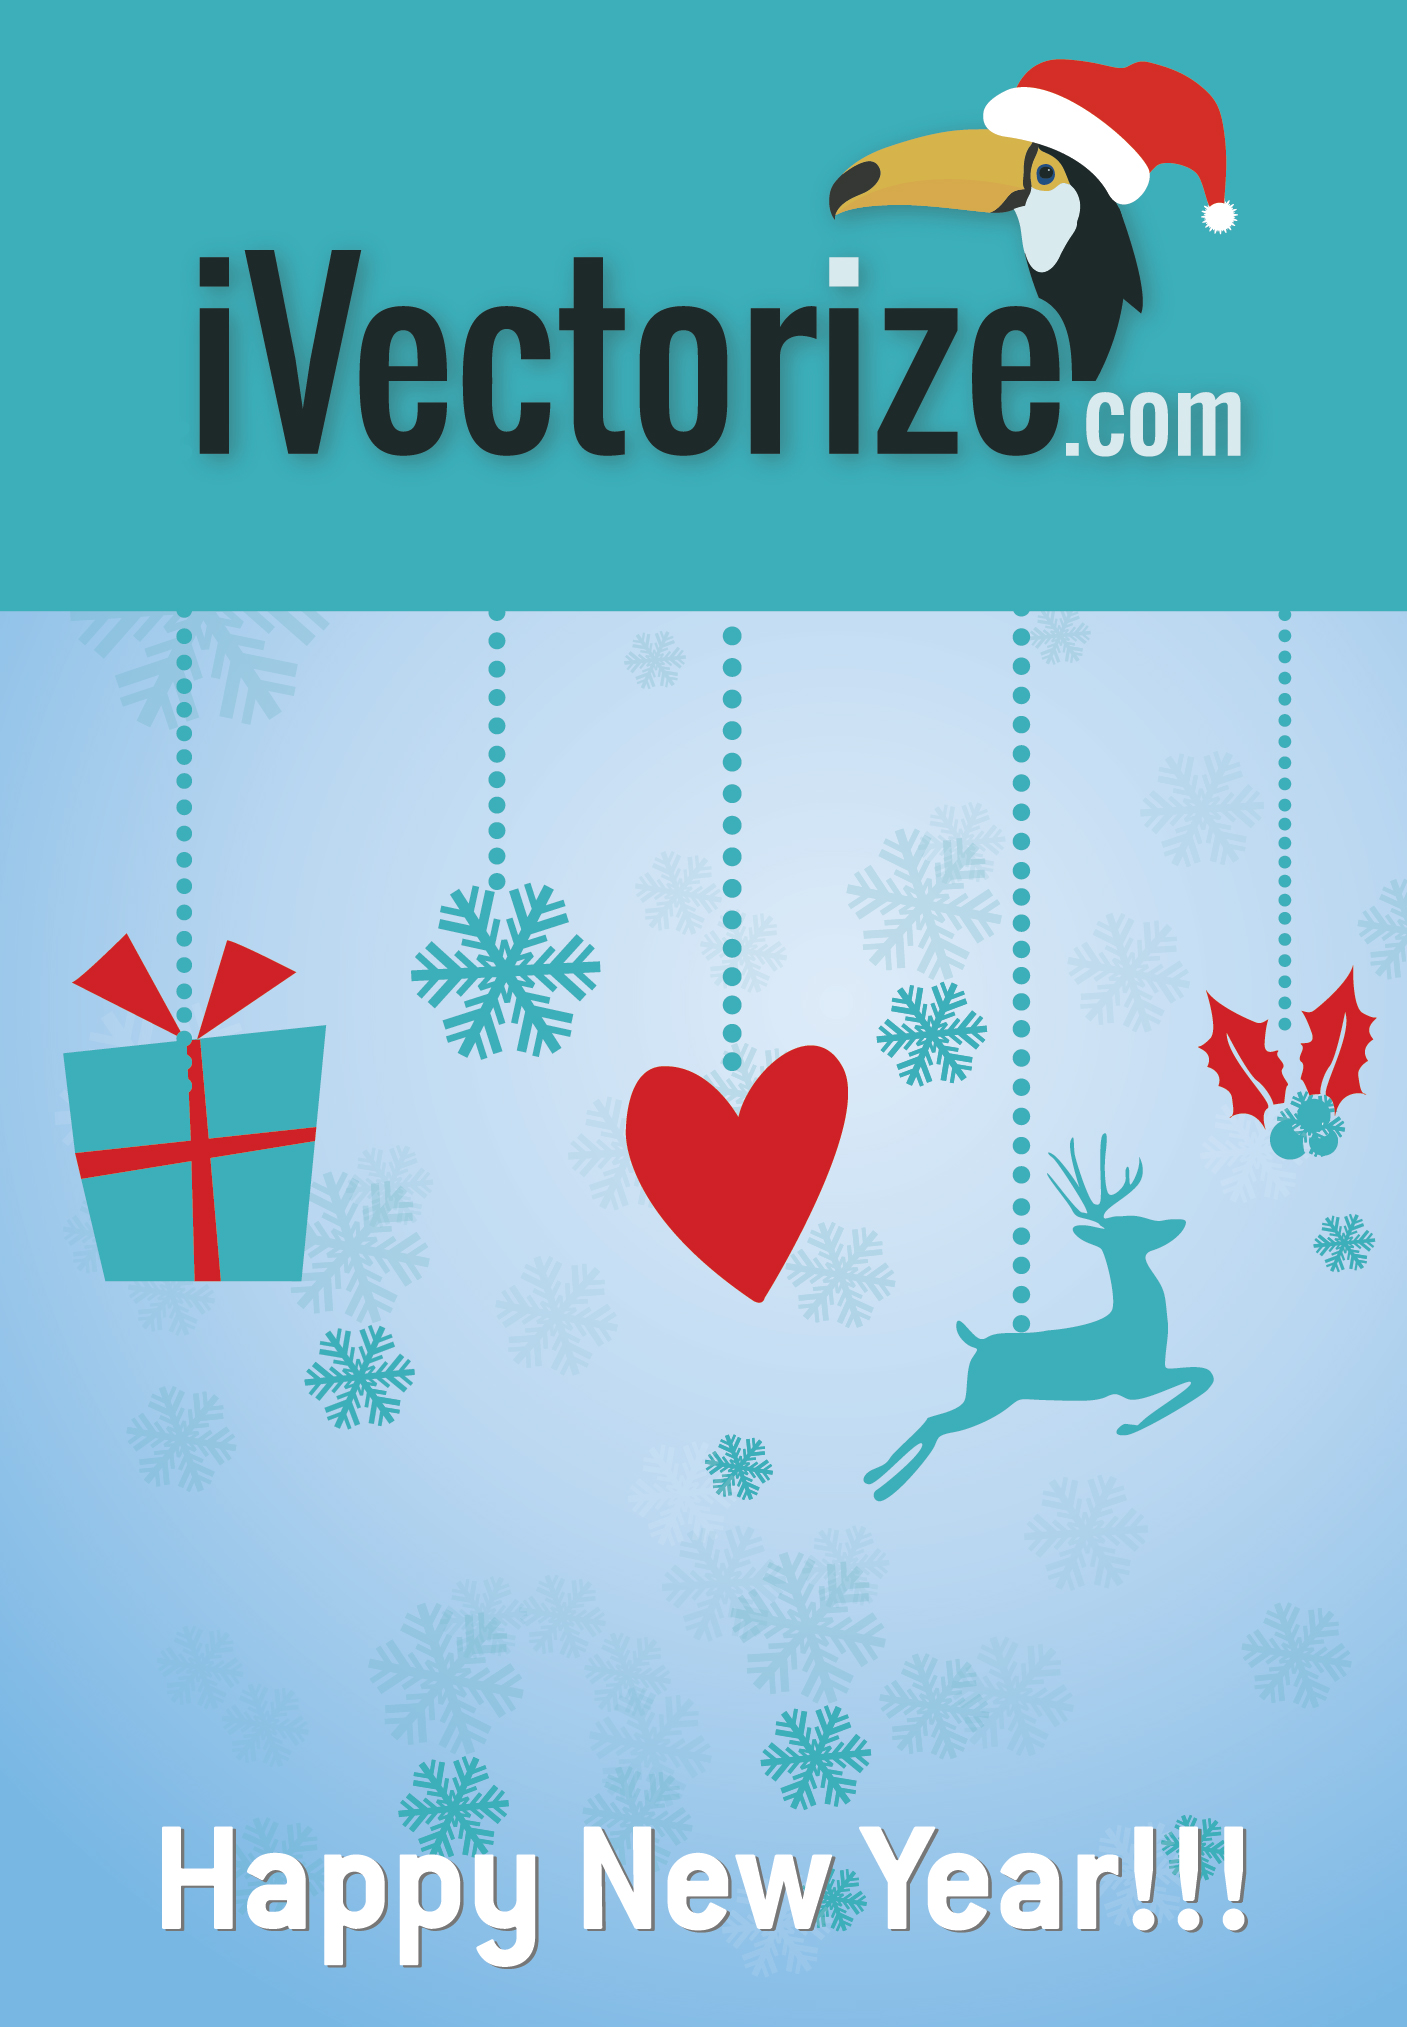 Read Season's Greetings from iVectorize.com Team